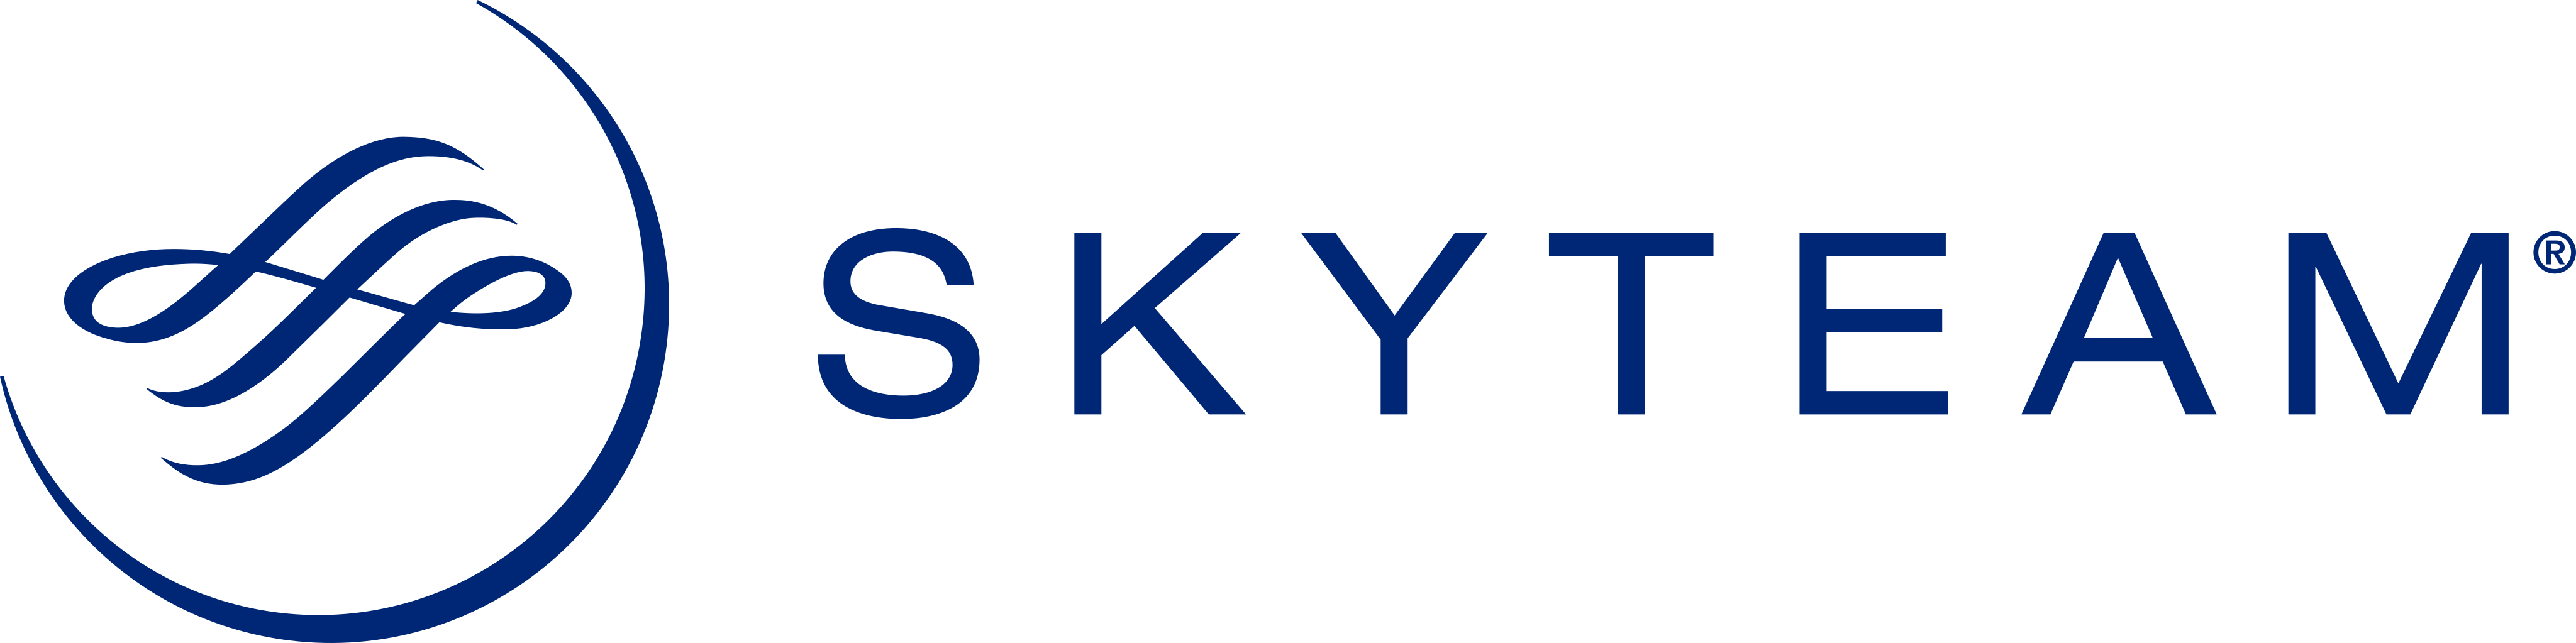 Skyteam Logo.